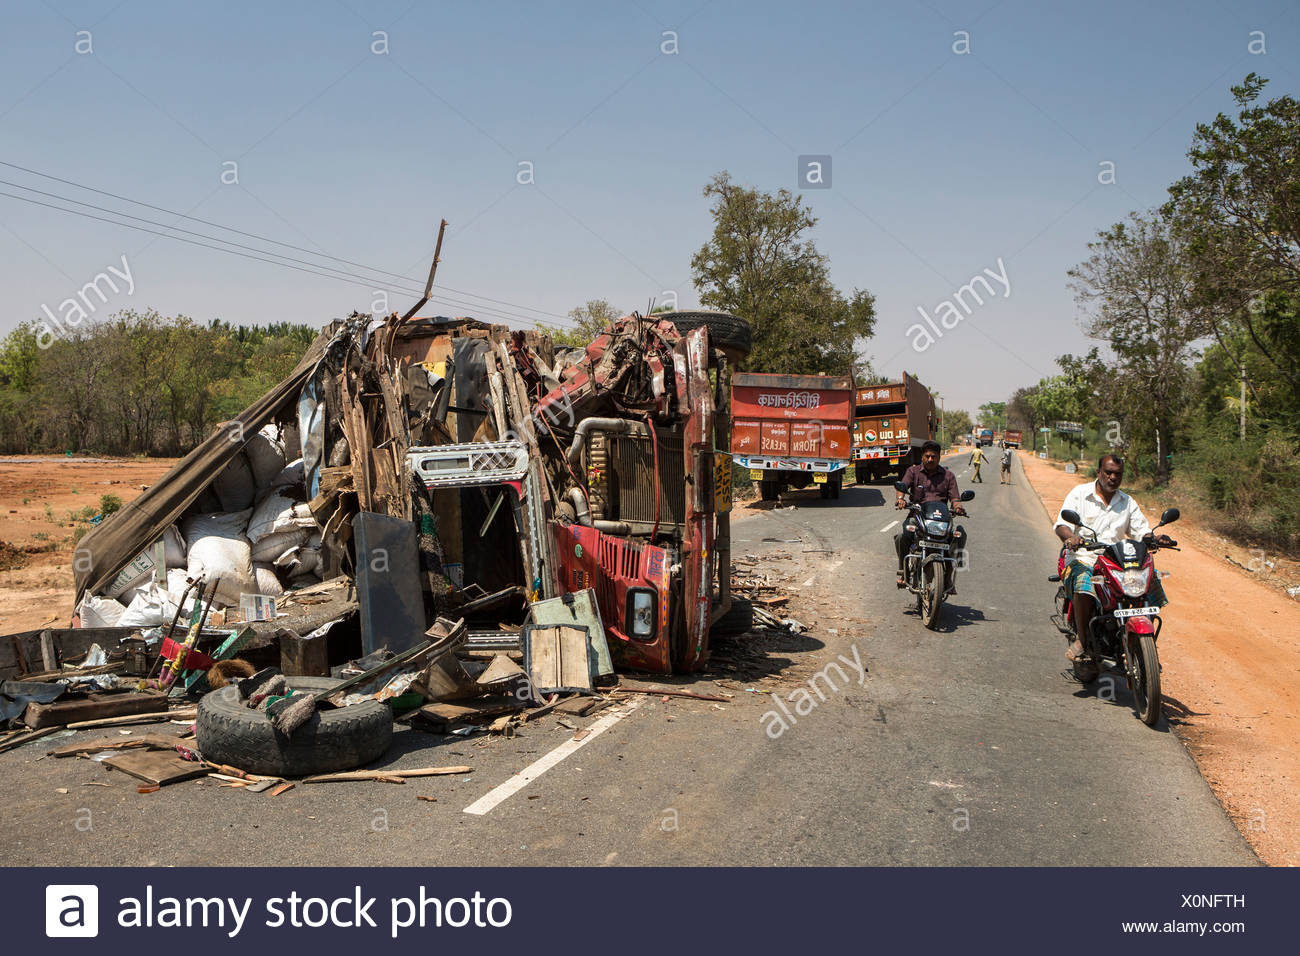 India, South India, Asia, Karnataka, road, accident, danger, truck - Stock Image